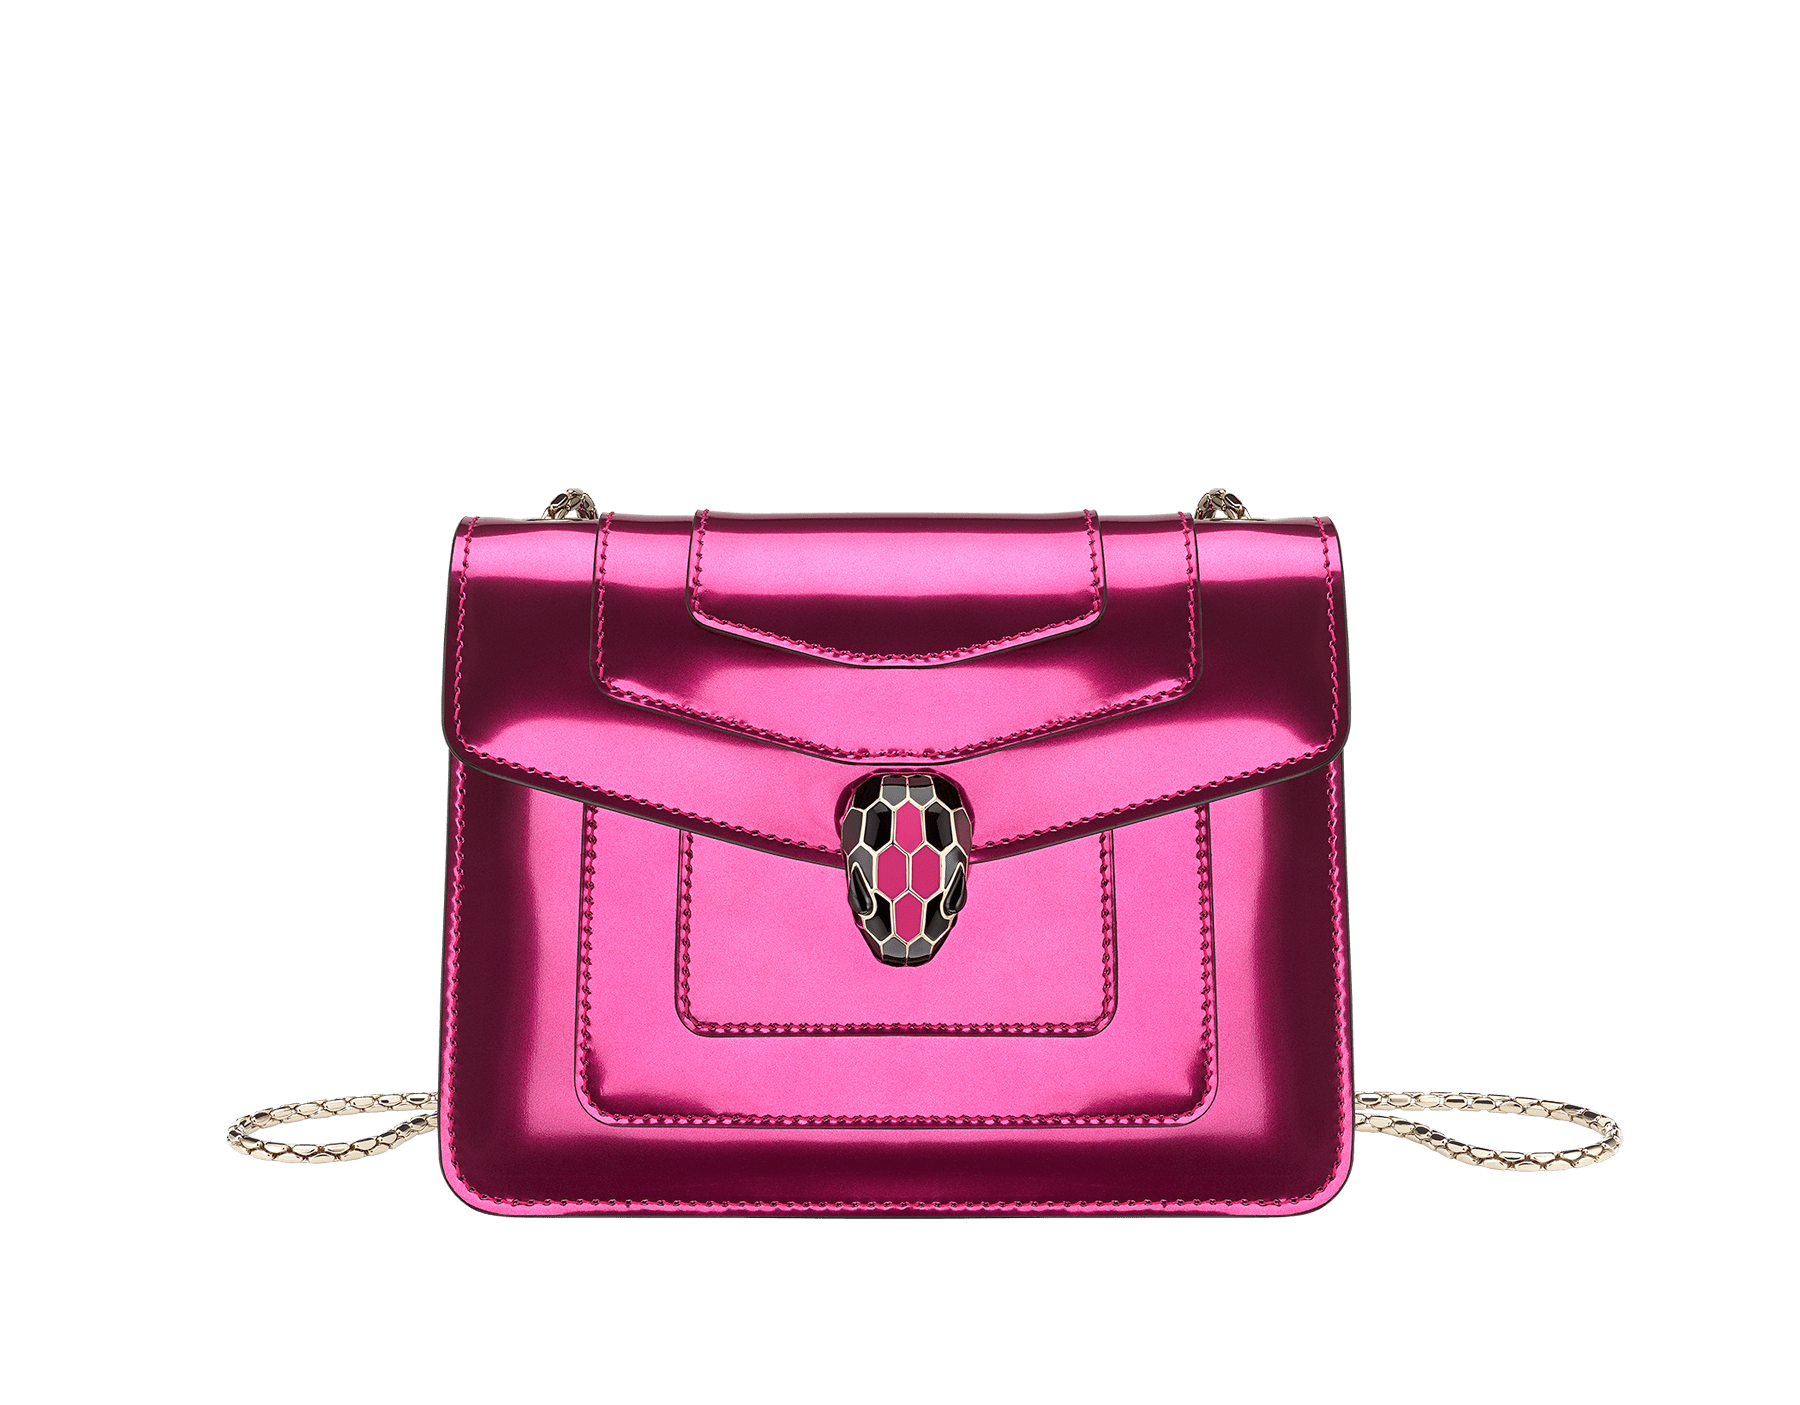 """Serpenti Forever"" crossbody bag in flash amethyst new brushed metallic calf leather. Iconic snake head closure in light gold plated brass enriched with black and flash amethyst enamel and black onyx eyes. 288885 image 1"